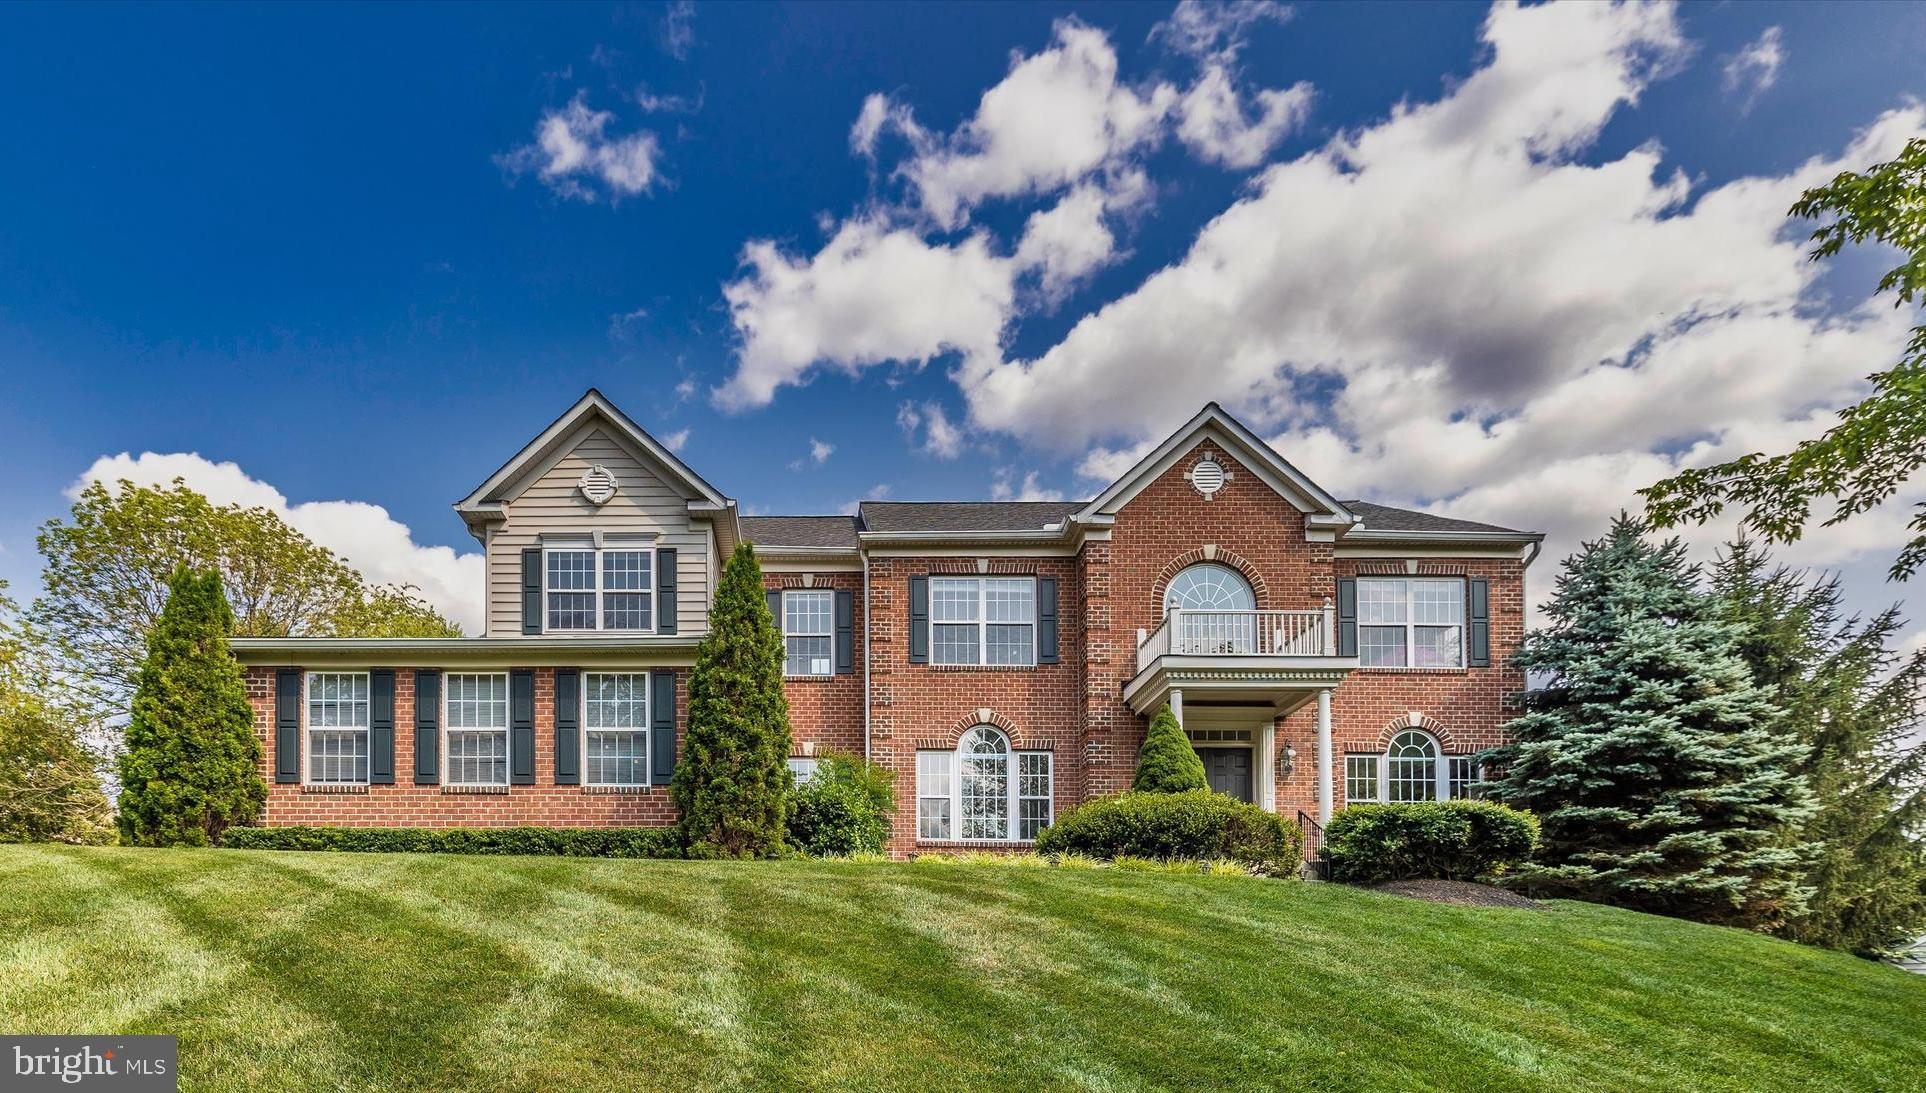 SIMPLY STUNNING...this designer inspired brick front colonial with over 6,000 sq. ft. of living spac